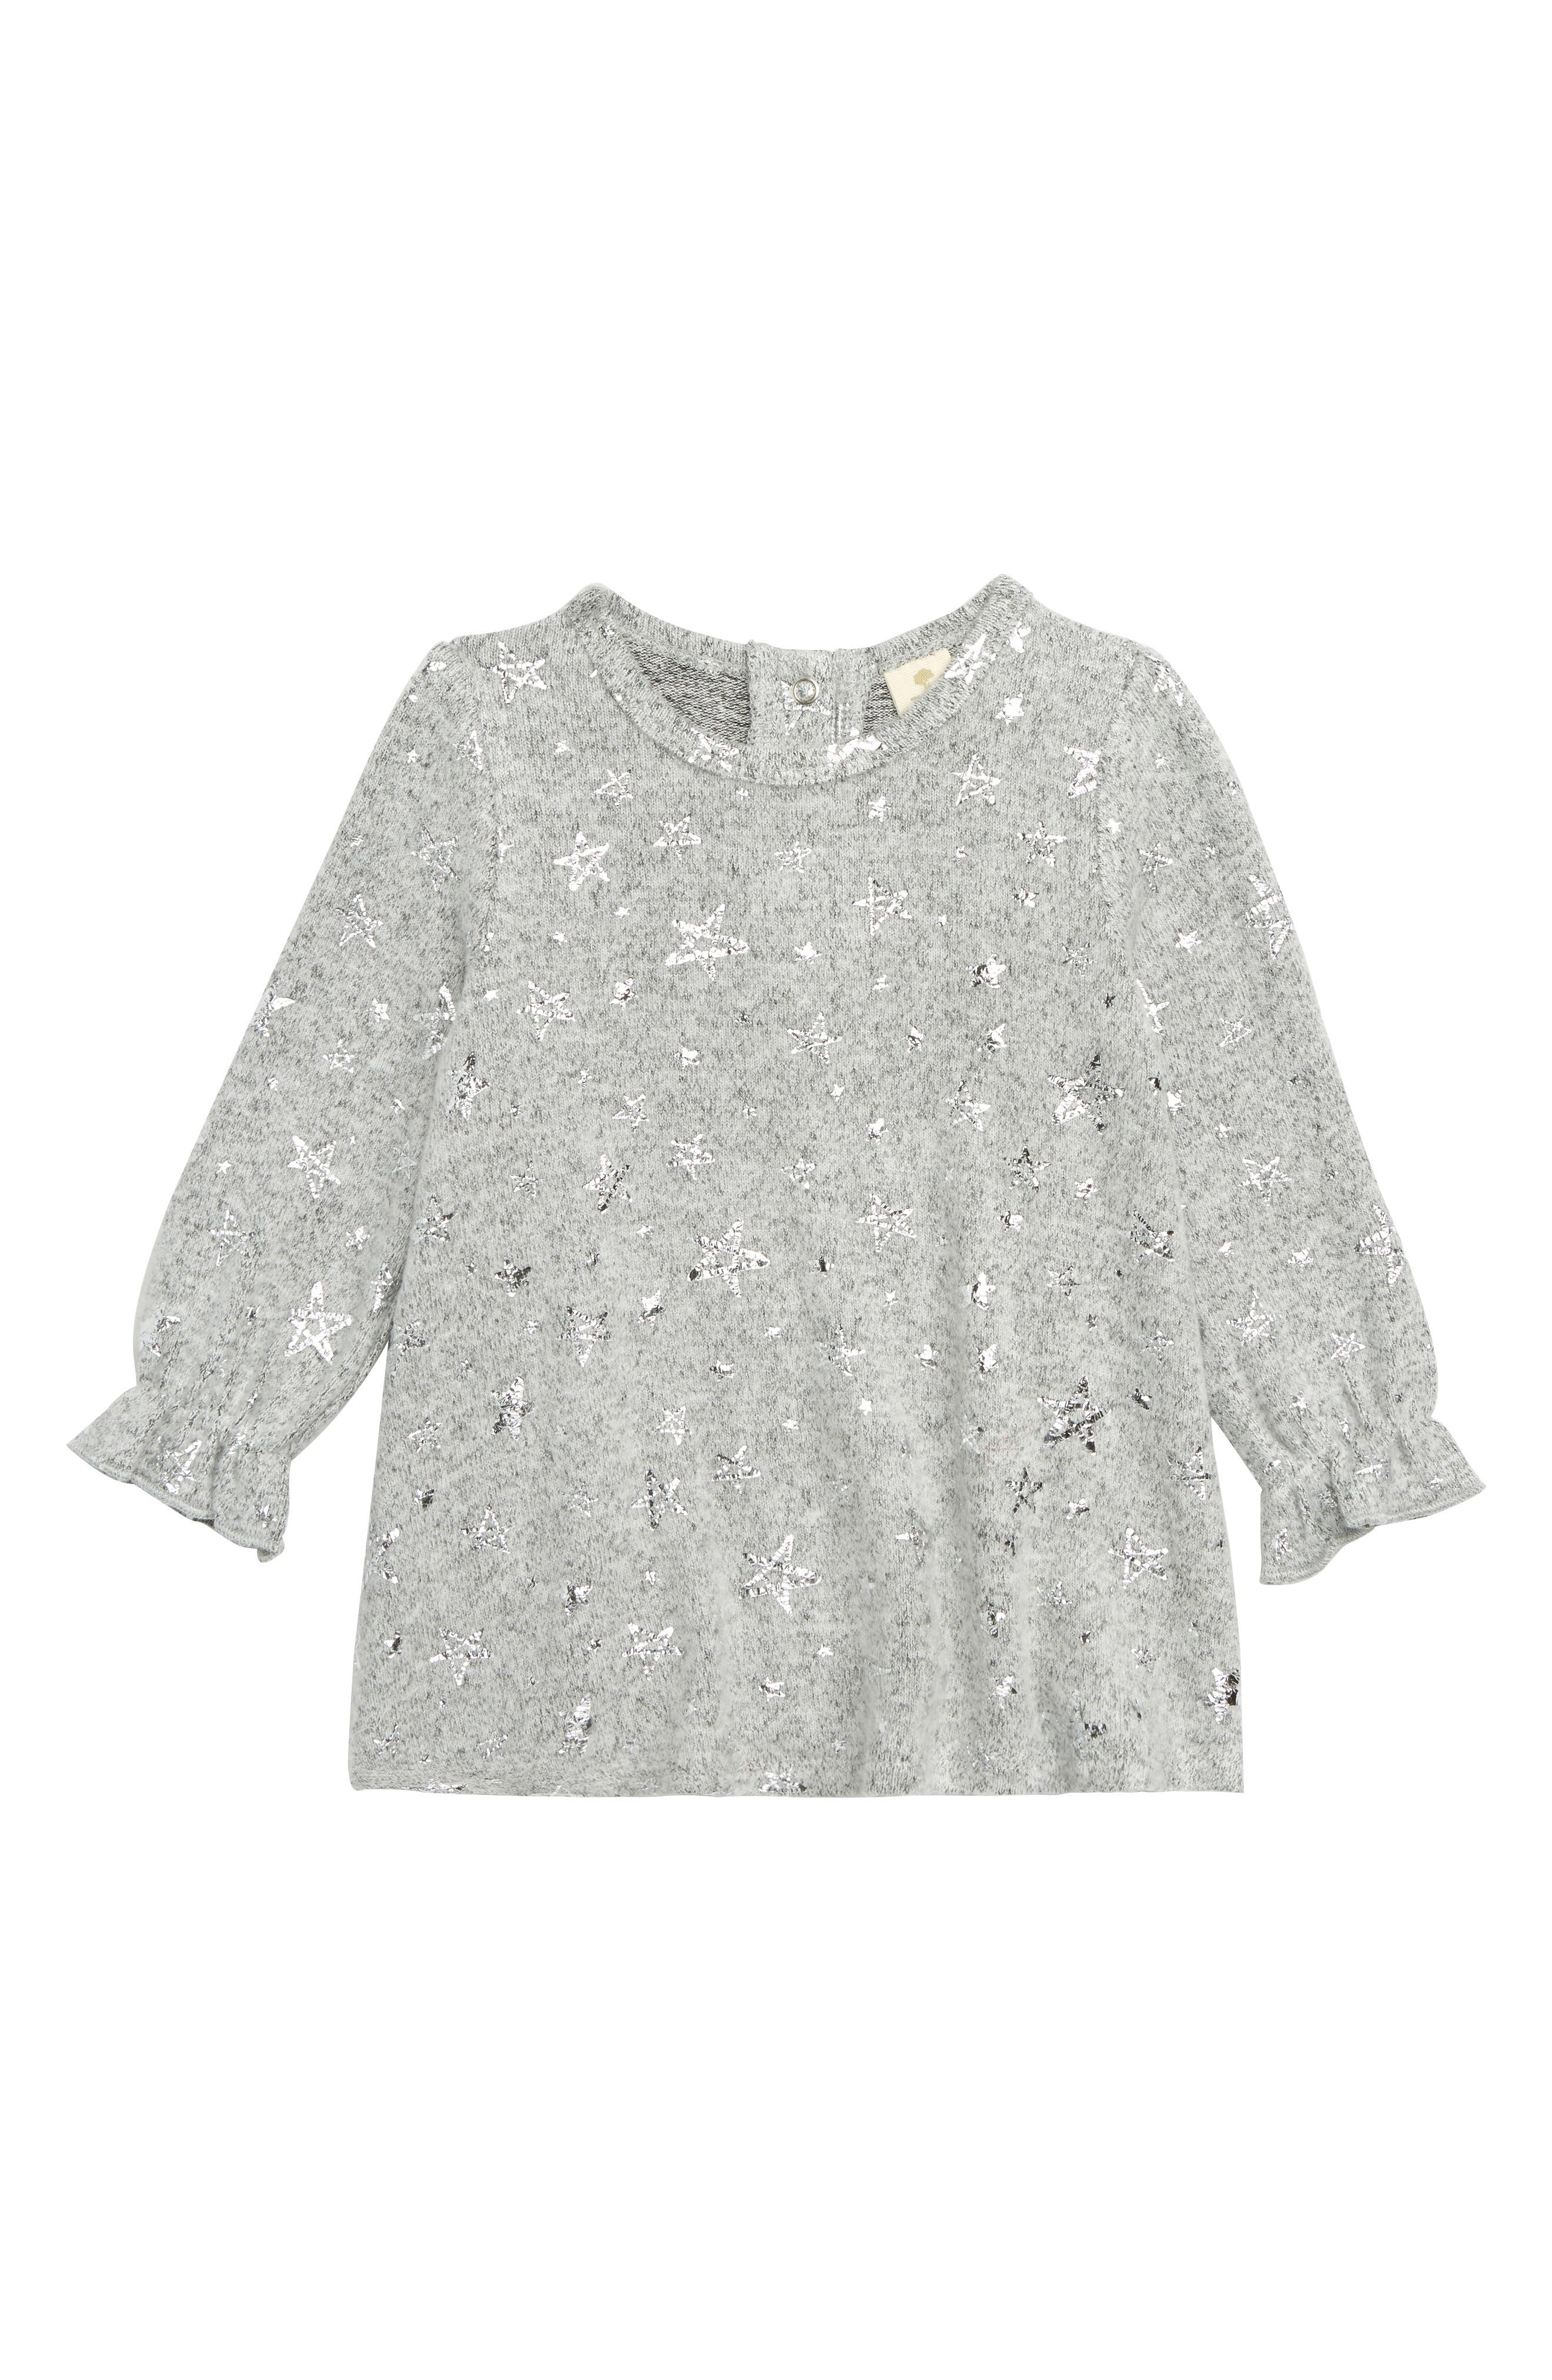 TUCKER + TATE Sparkle Knit Tunic, Main, color, 050